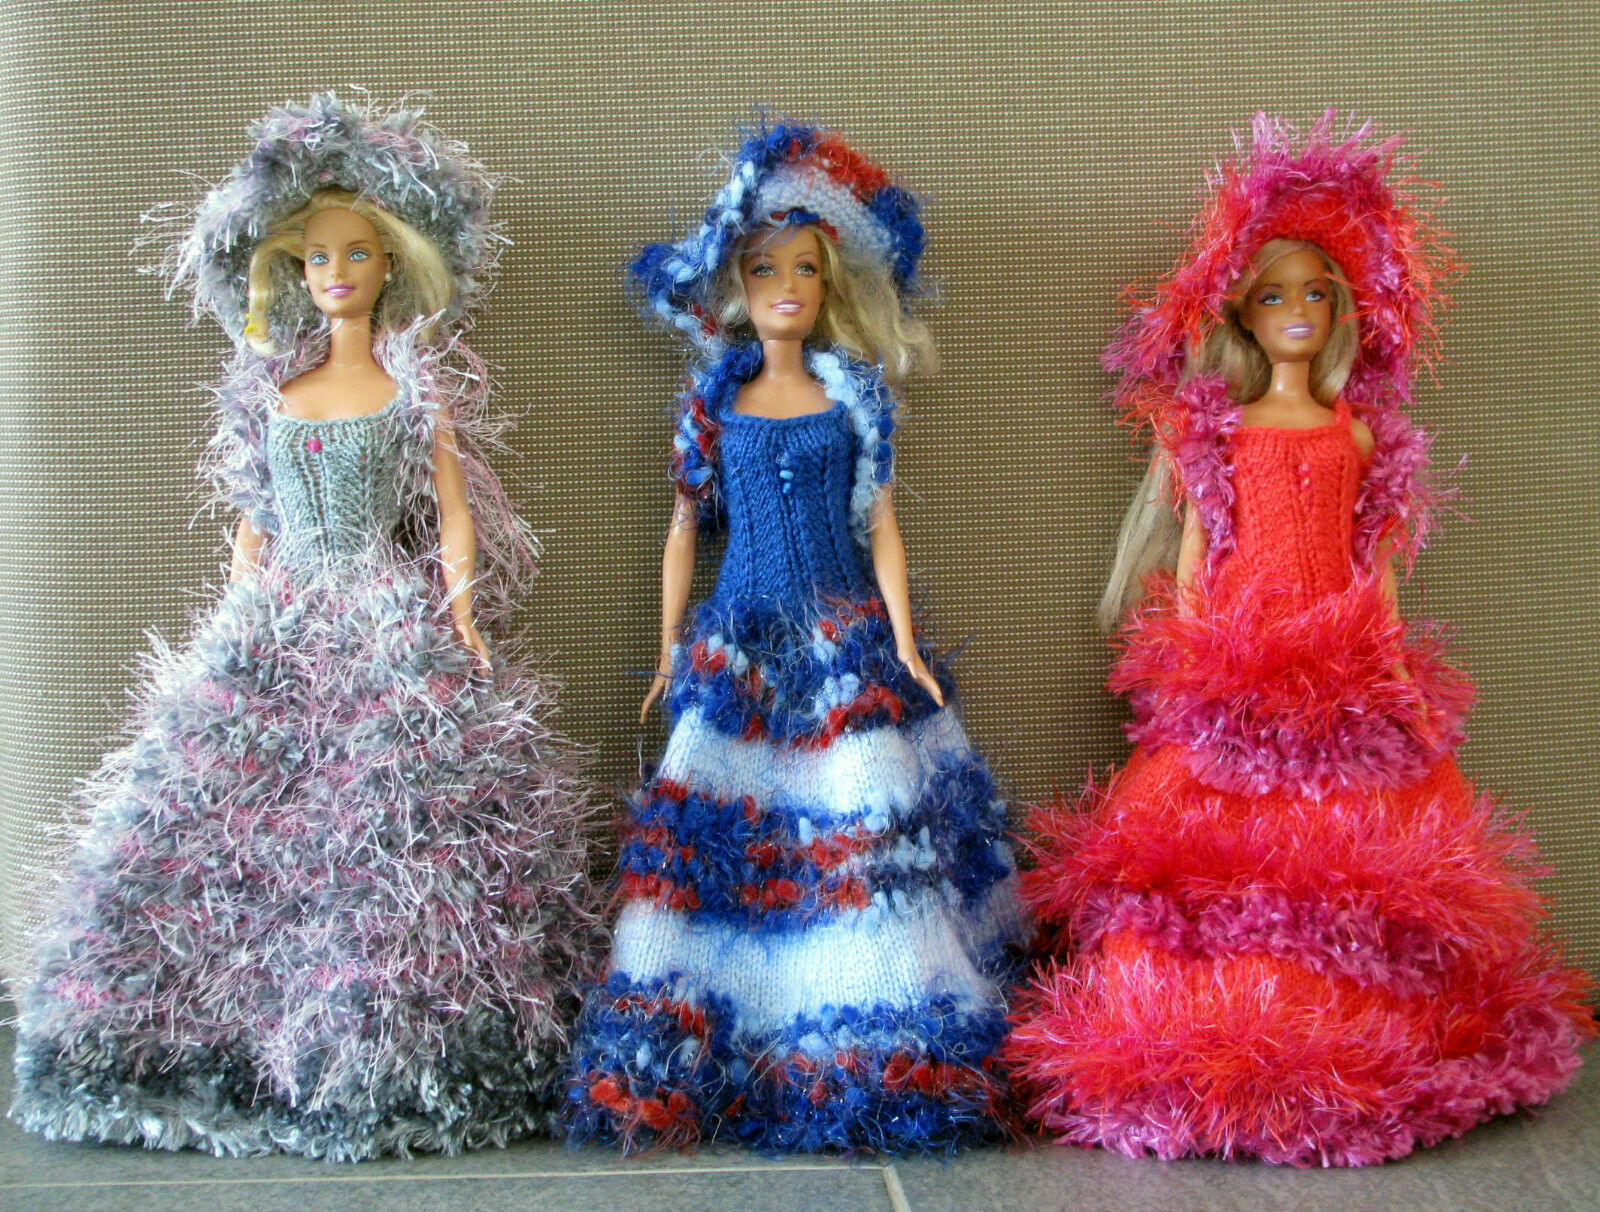 3 robes de poupée barbie modèles uniques faites main made in France chapeau boa